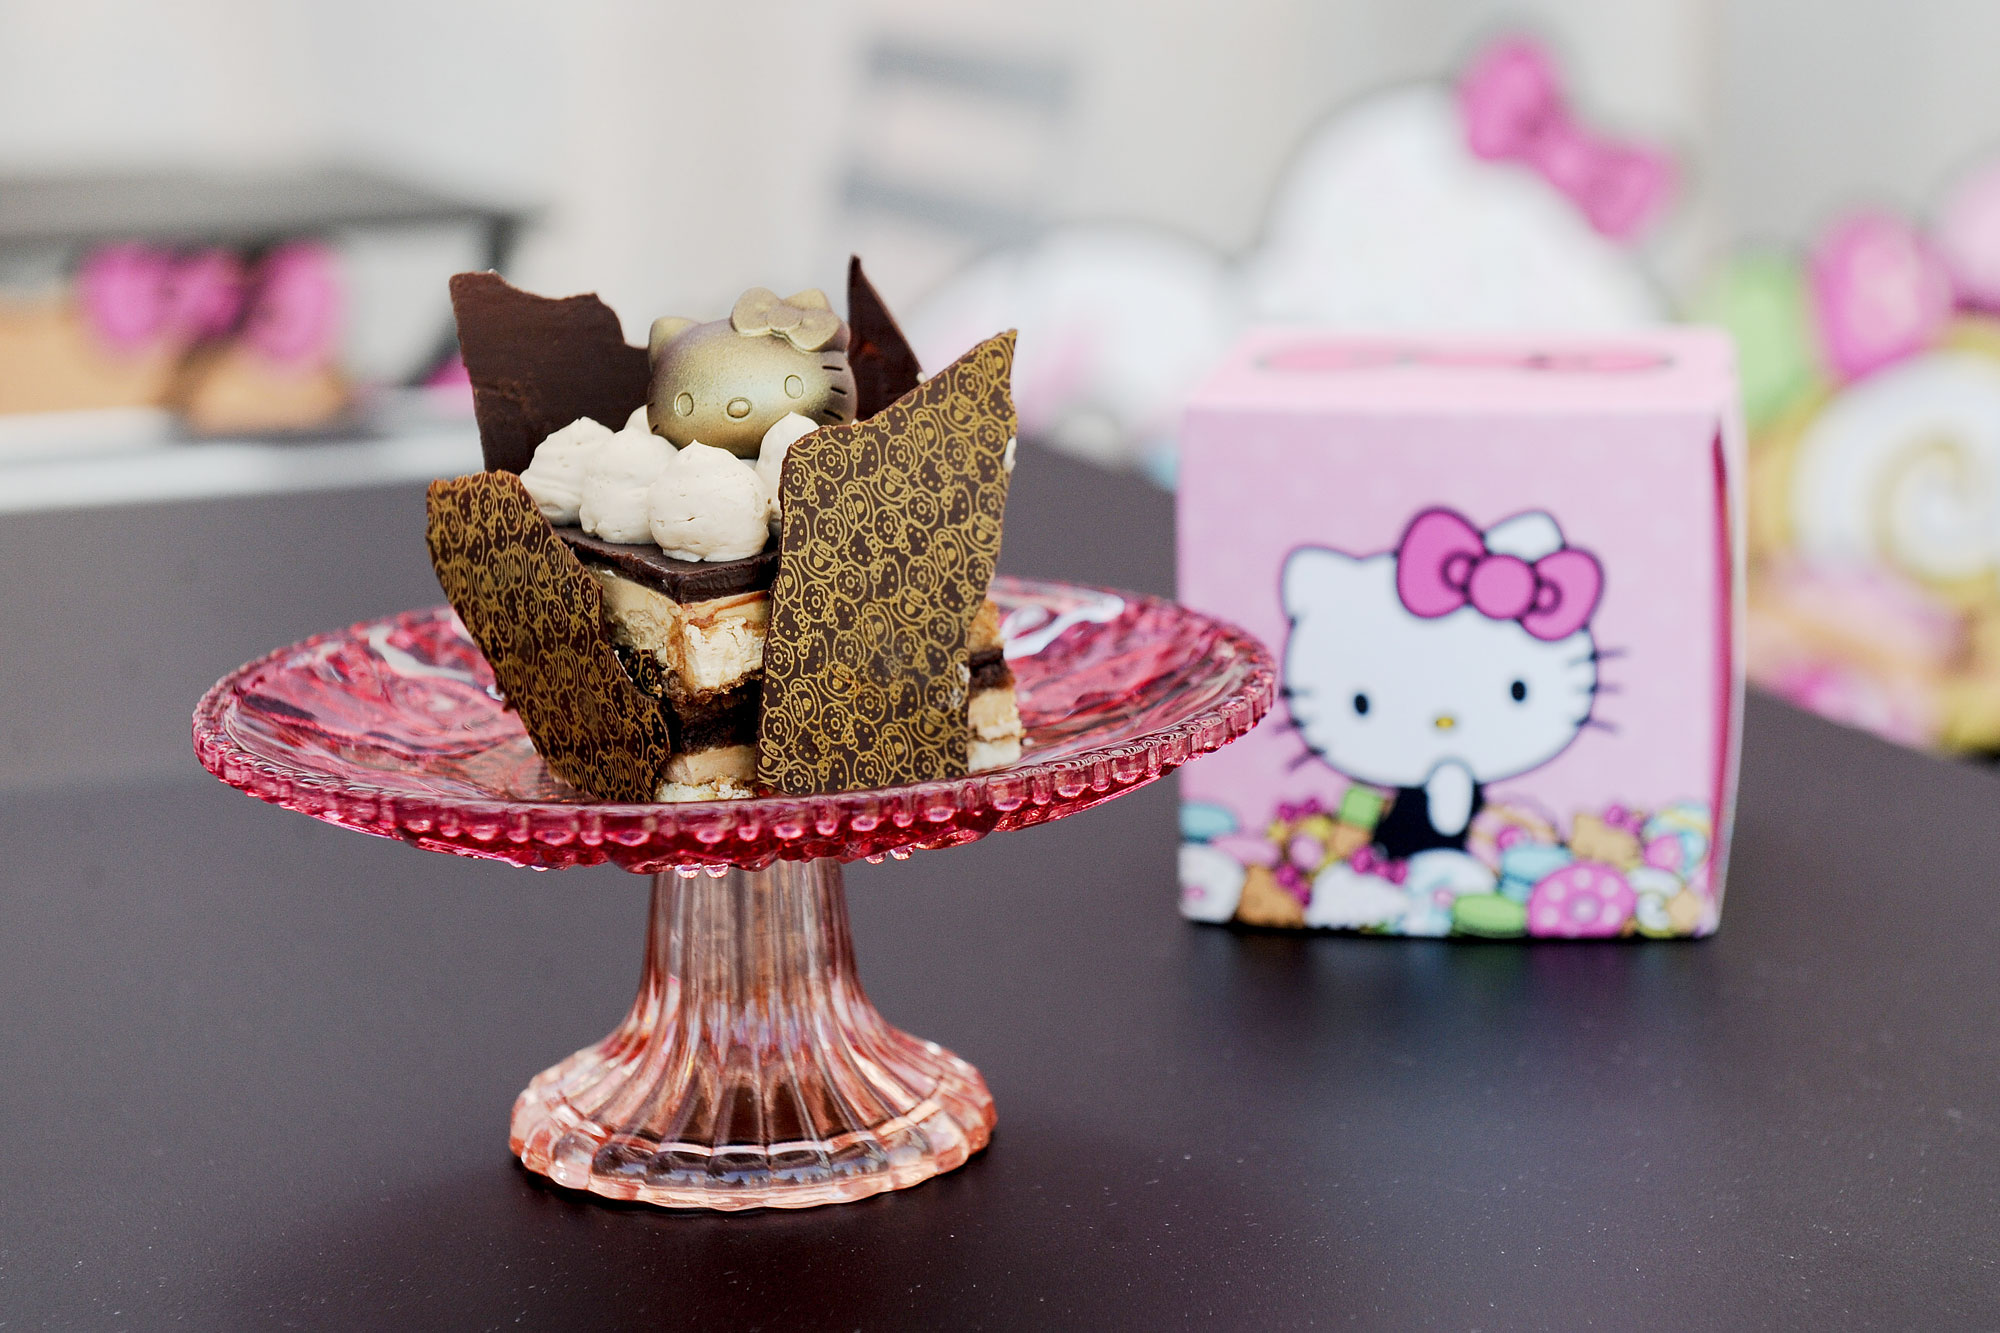 Hello-Kitty-Cafe-Pop-Up-Container---Chocolate-Opera-Cake